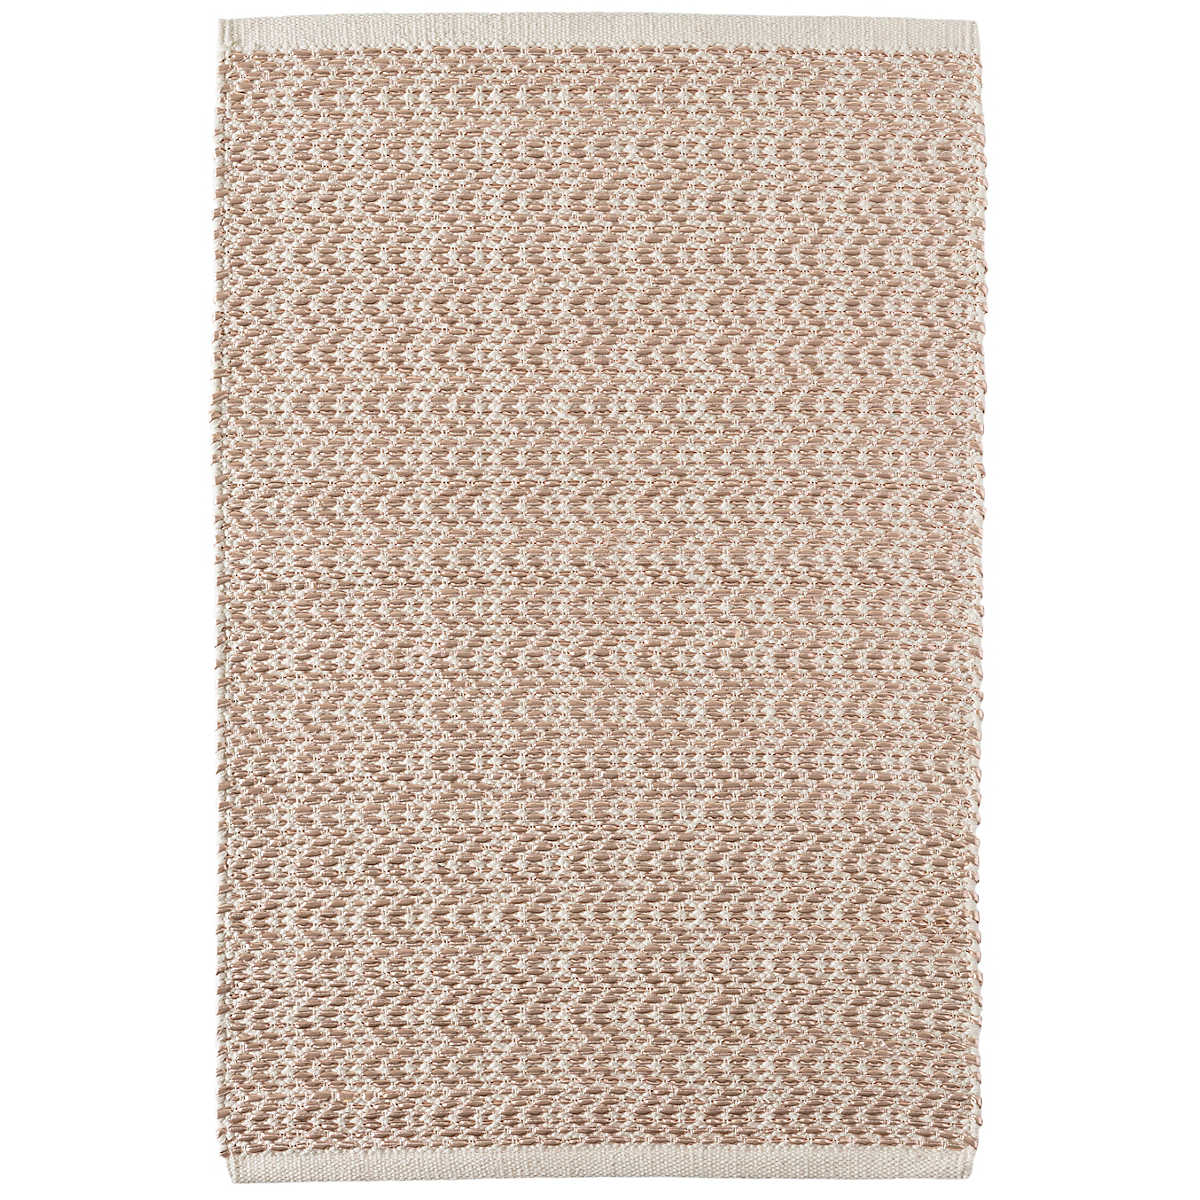 544f9f5dfade Now 40% Off! Glimmer Wave Rose Gold Woven Rug